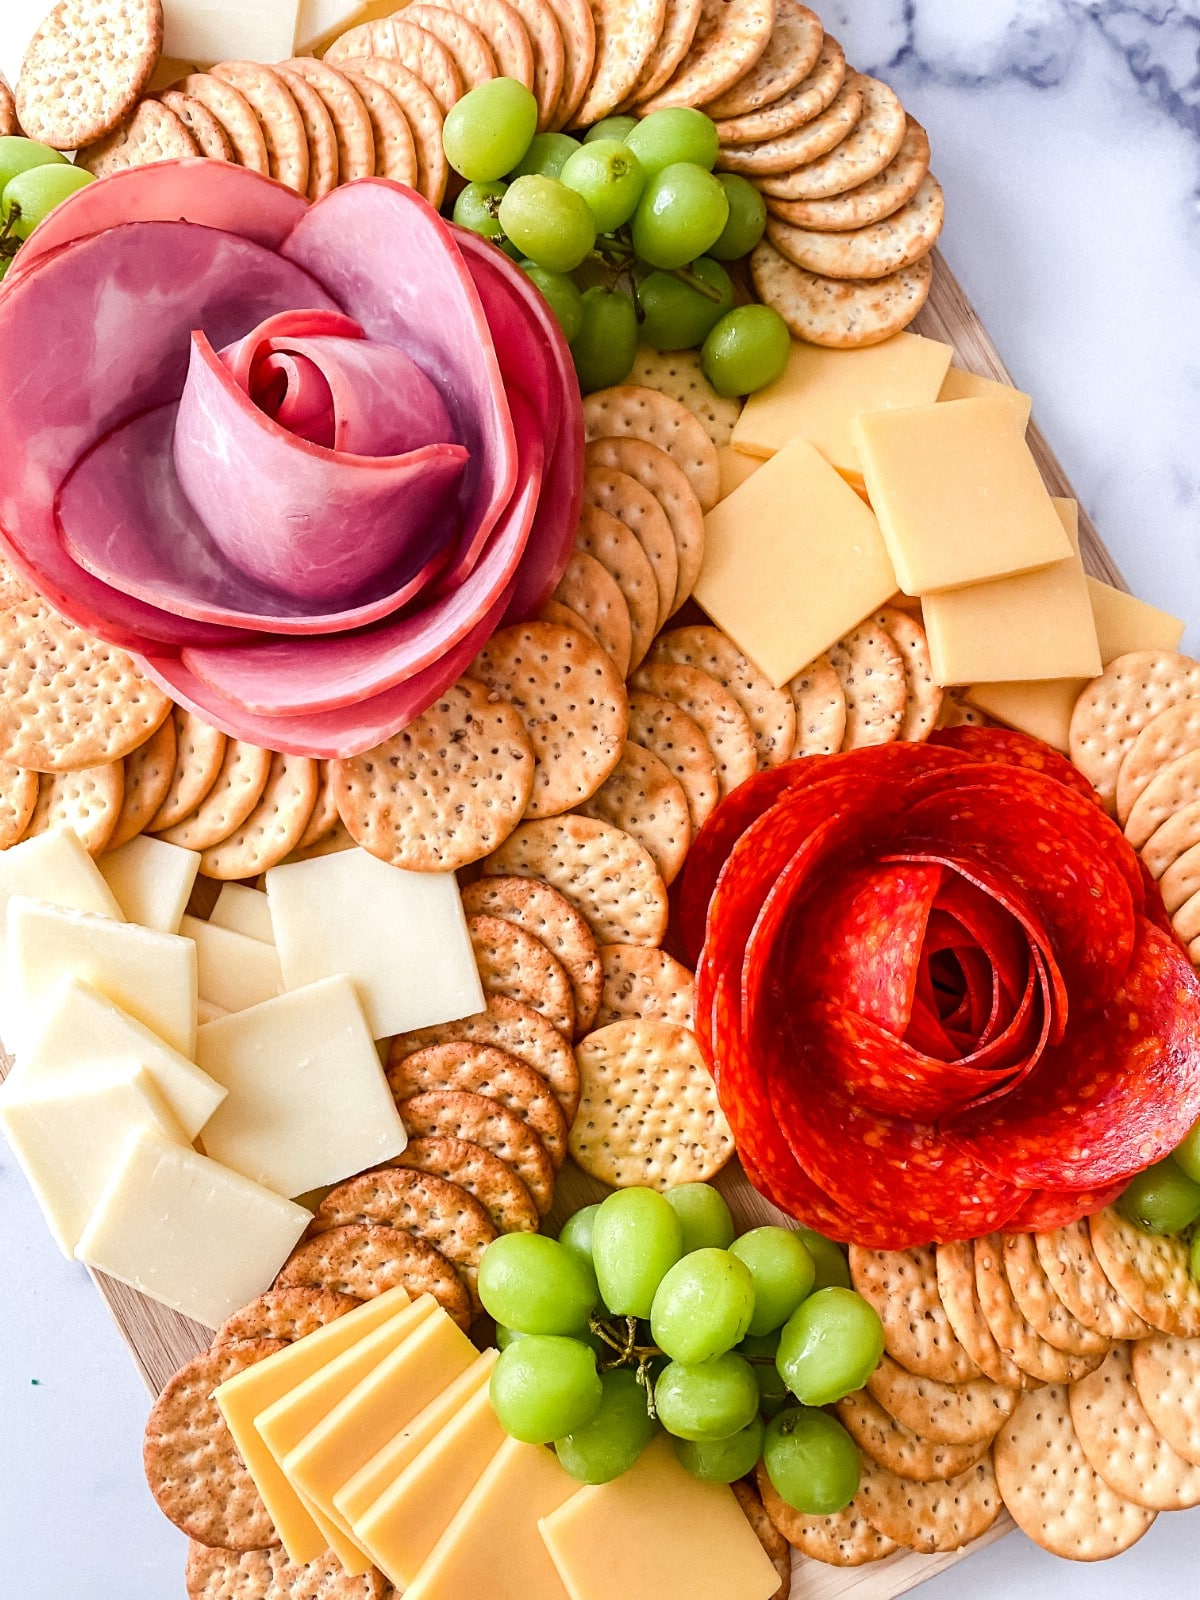 Grazing board with white and yellow cheese